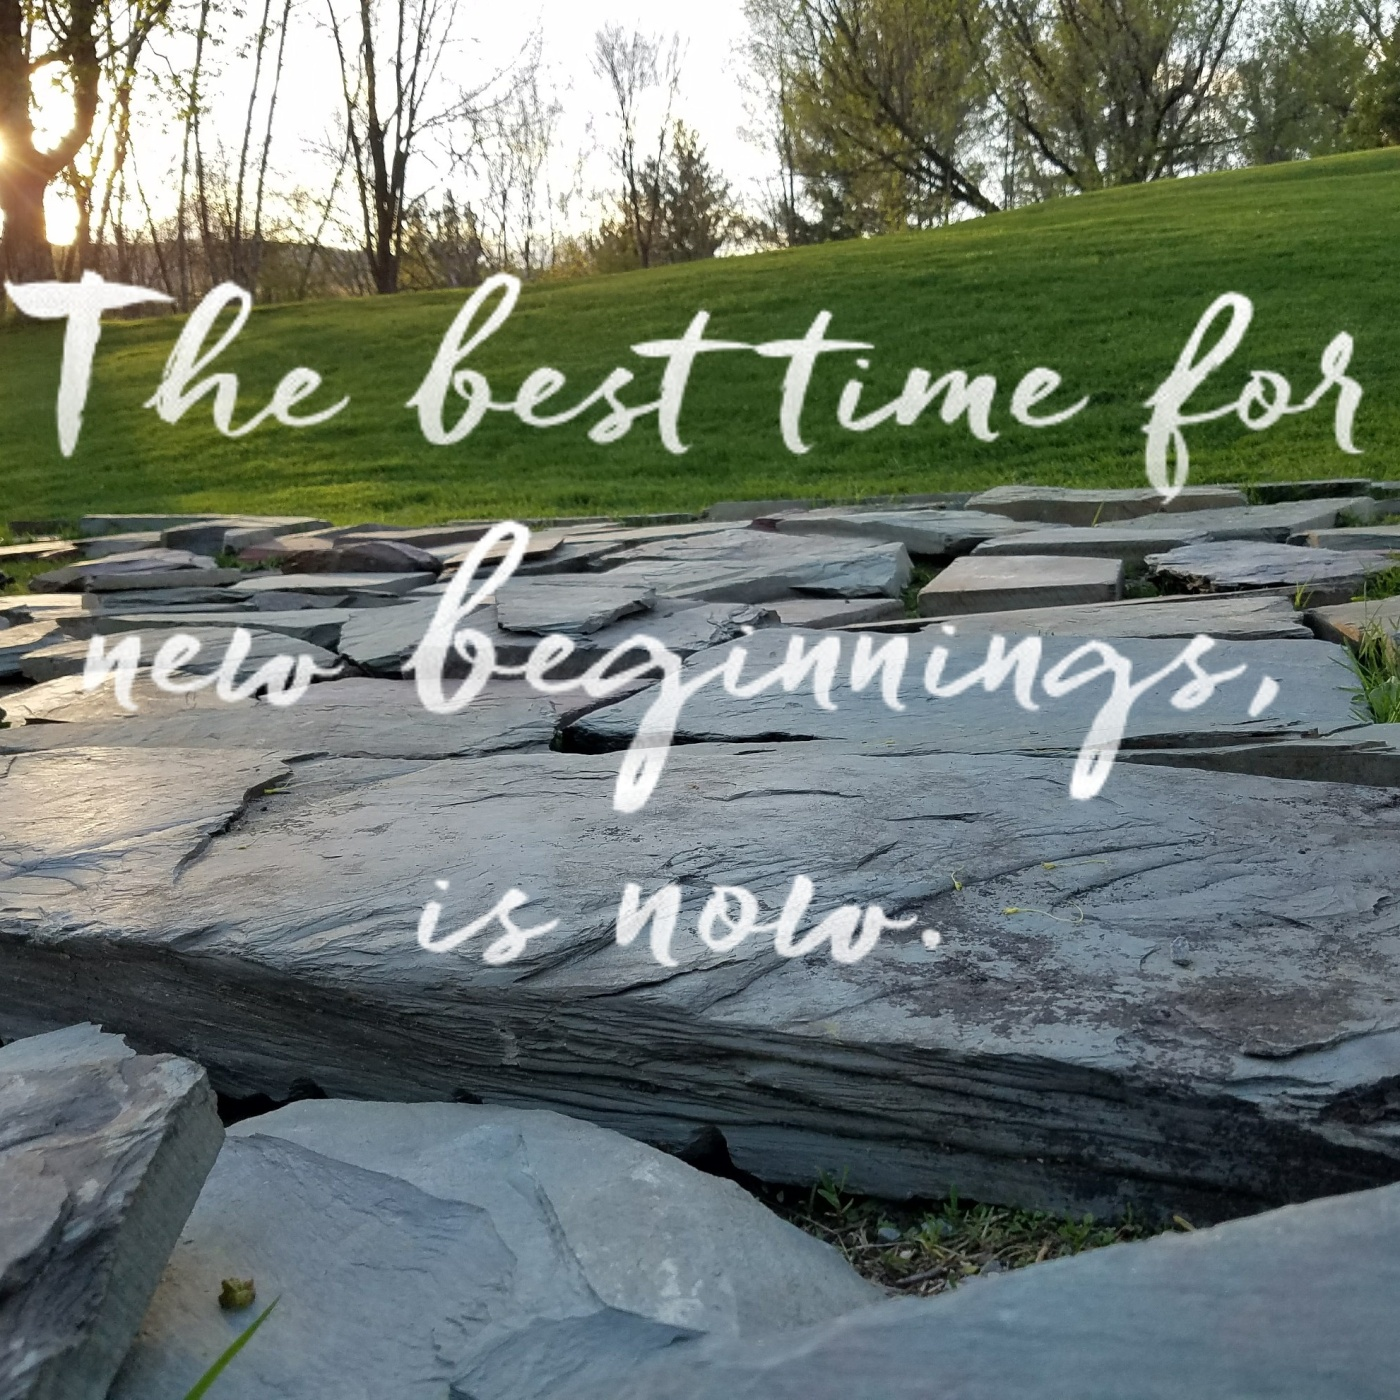 Better Beauty Vermont The Best Time for new beginnings slate stones